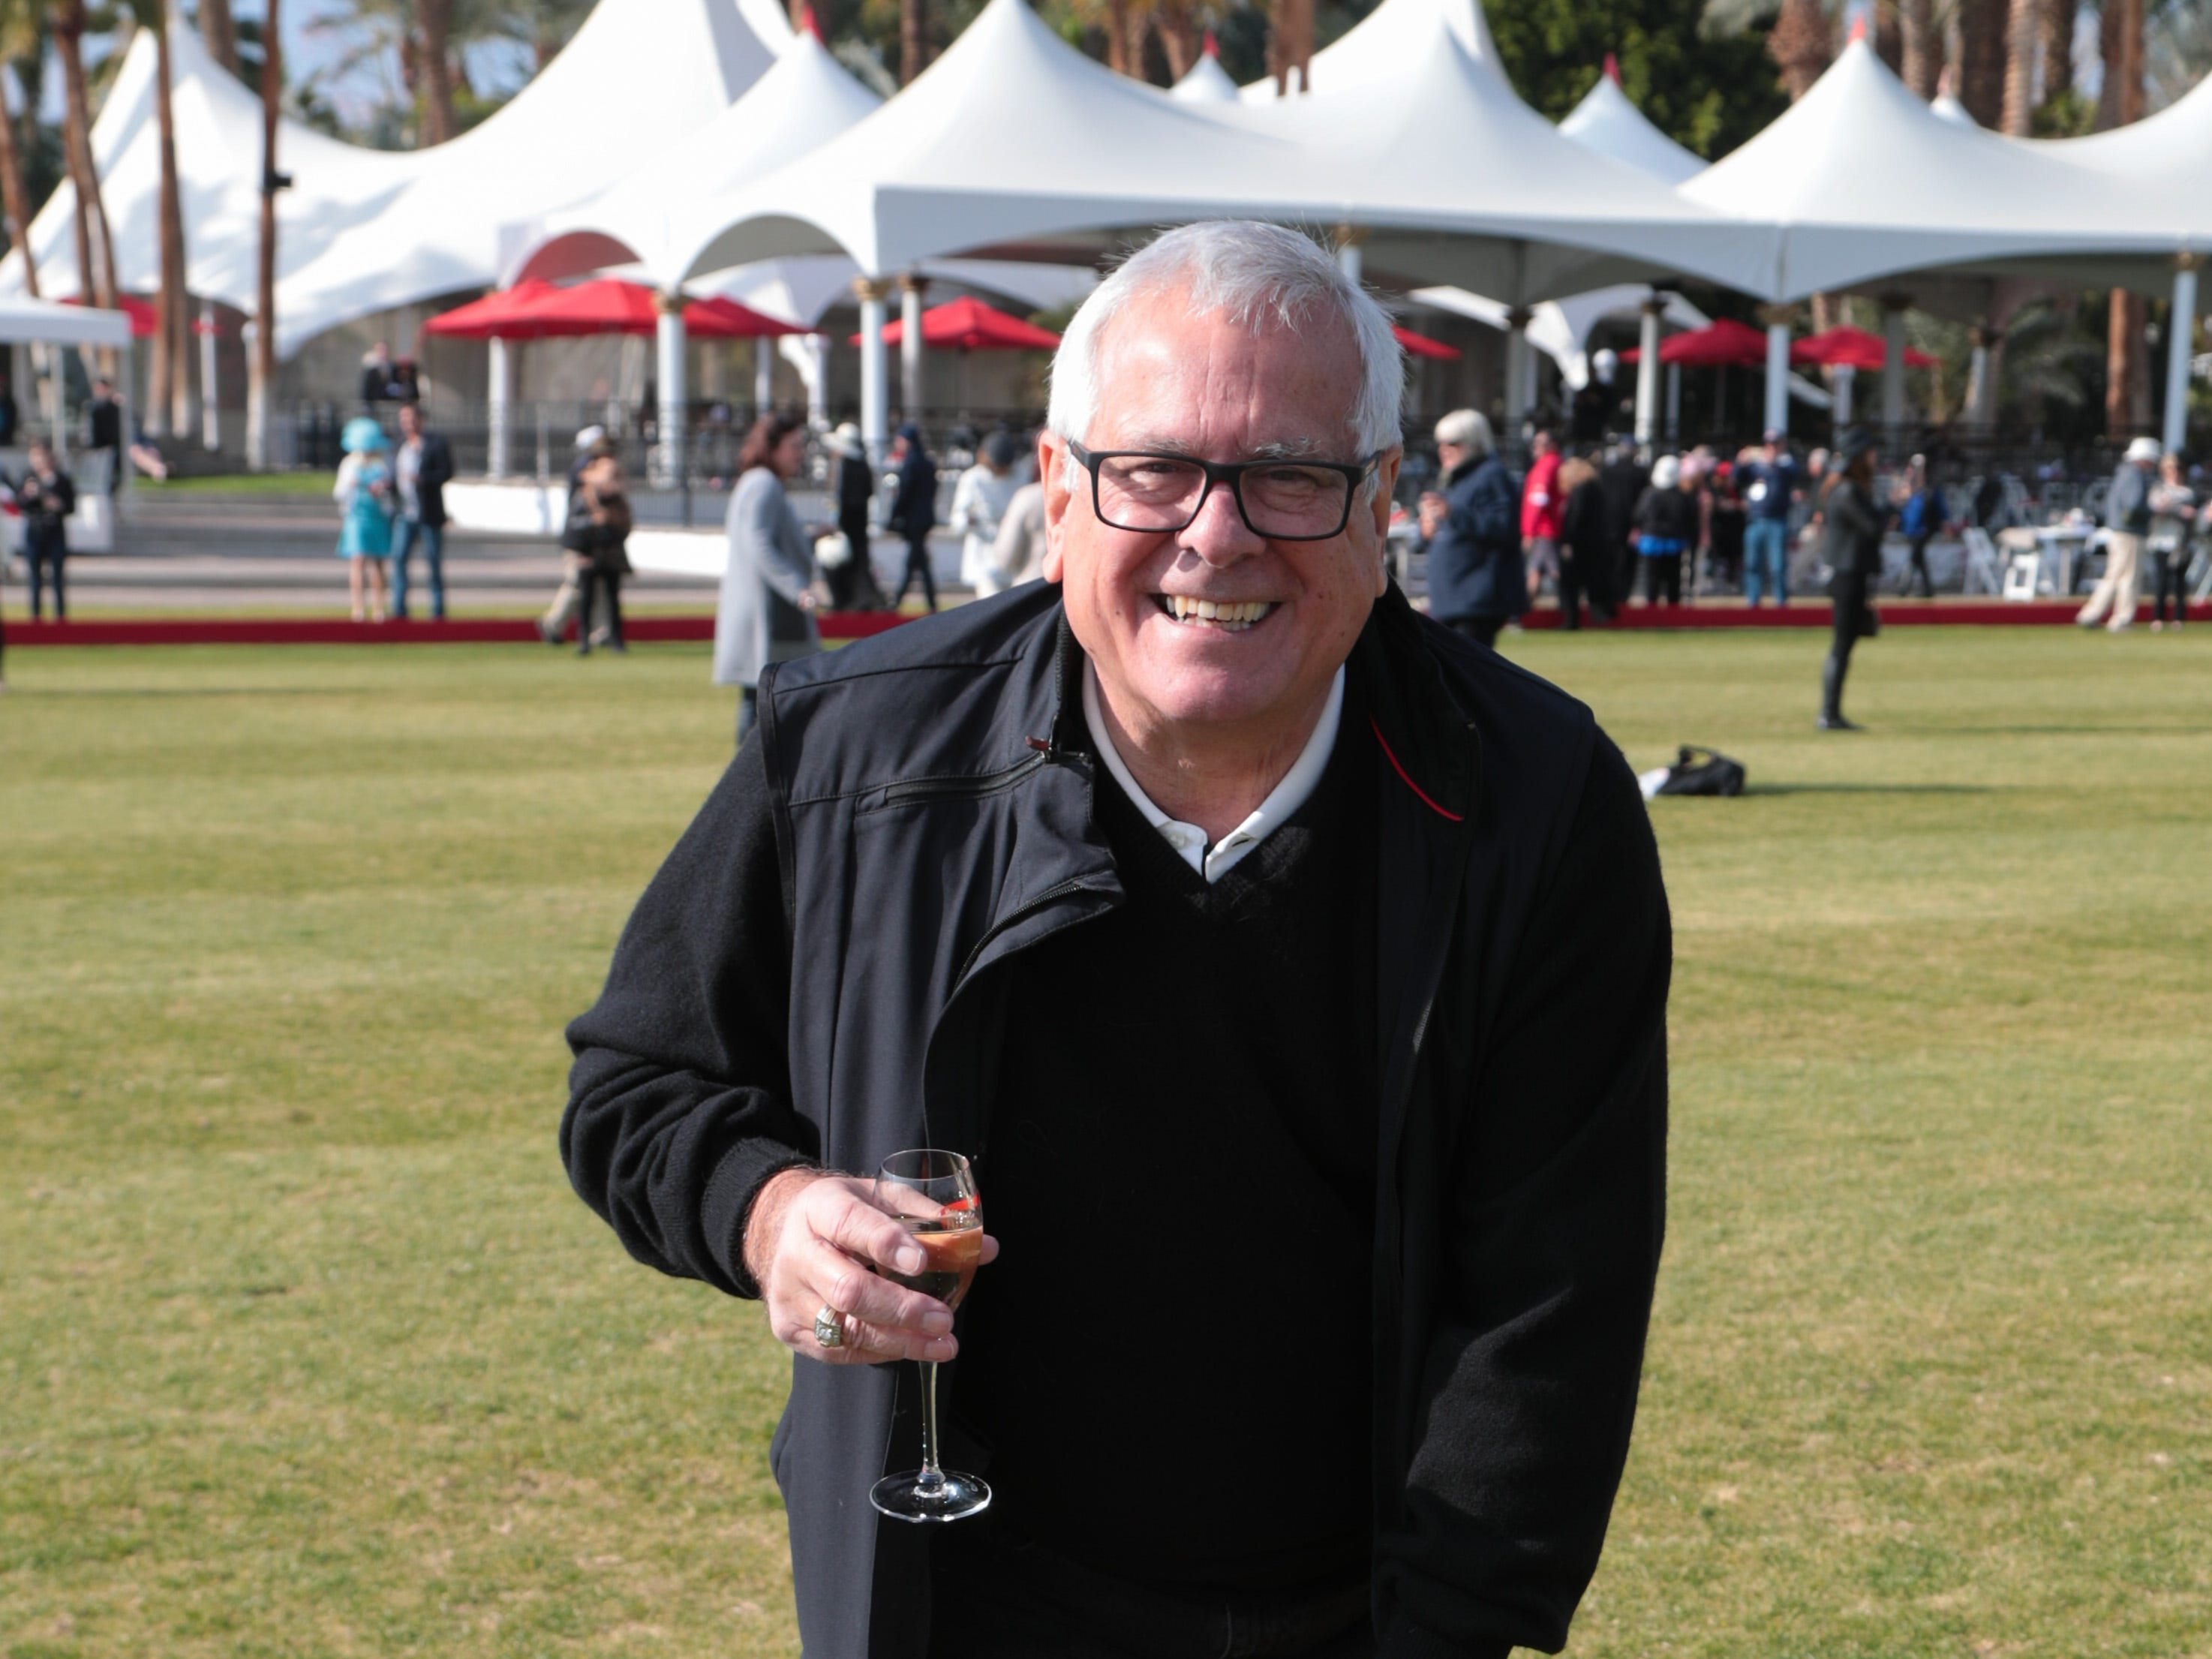 John Crespy fills in divets with his dog Ginger at the Empire Polo Club, Indio, Calif., Sunday, January 6, 2018.